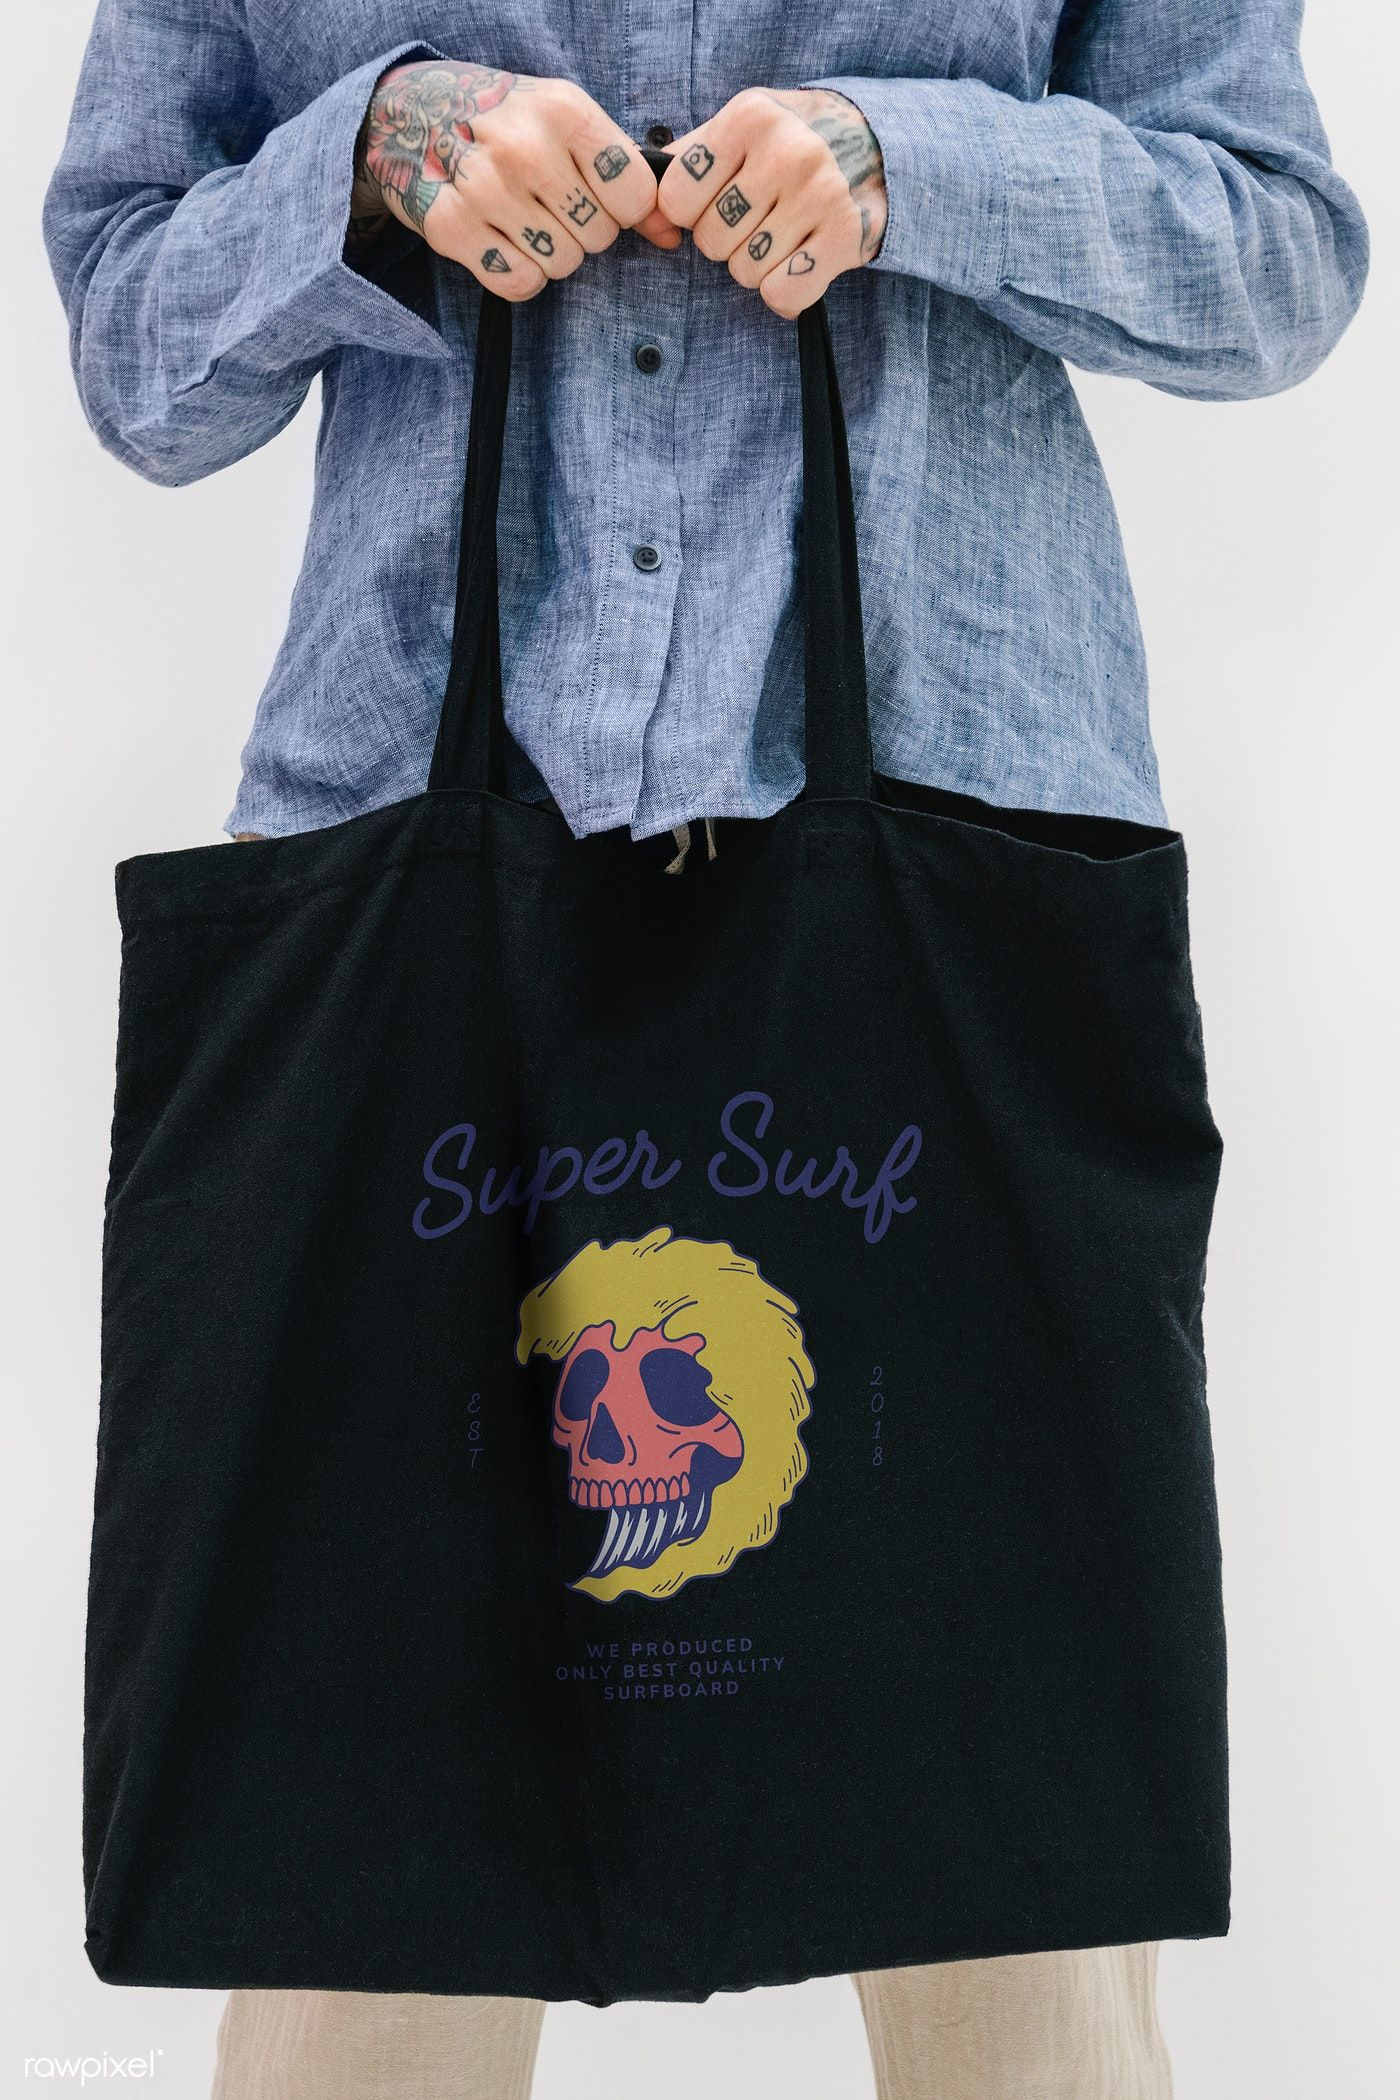 Download Download Premium Psd Of Tattooed Woman In A Blue Linen Shirt Holding A Linen Shirt Black Tote Bag Blue Linens